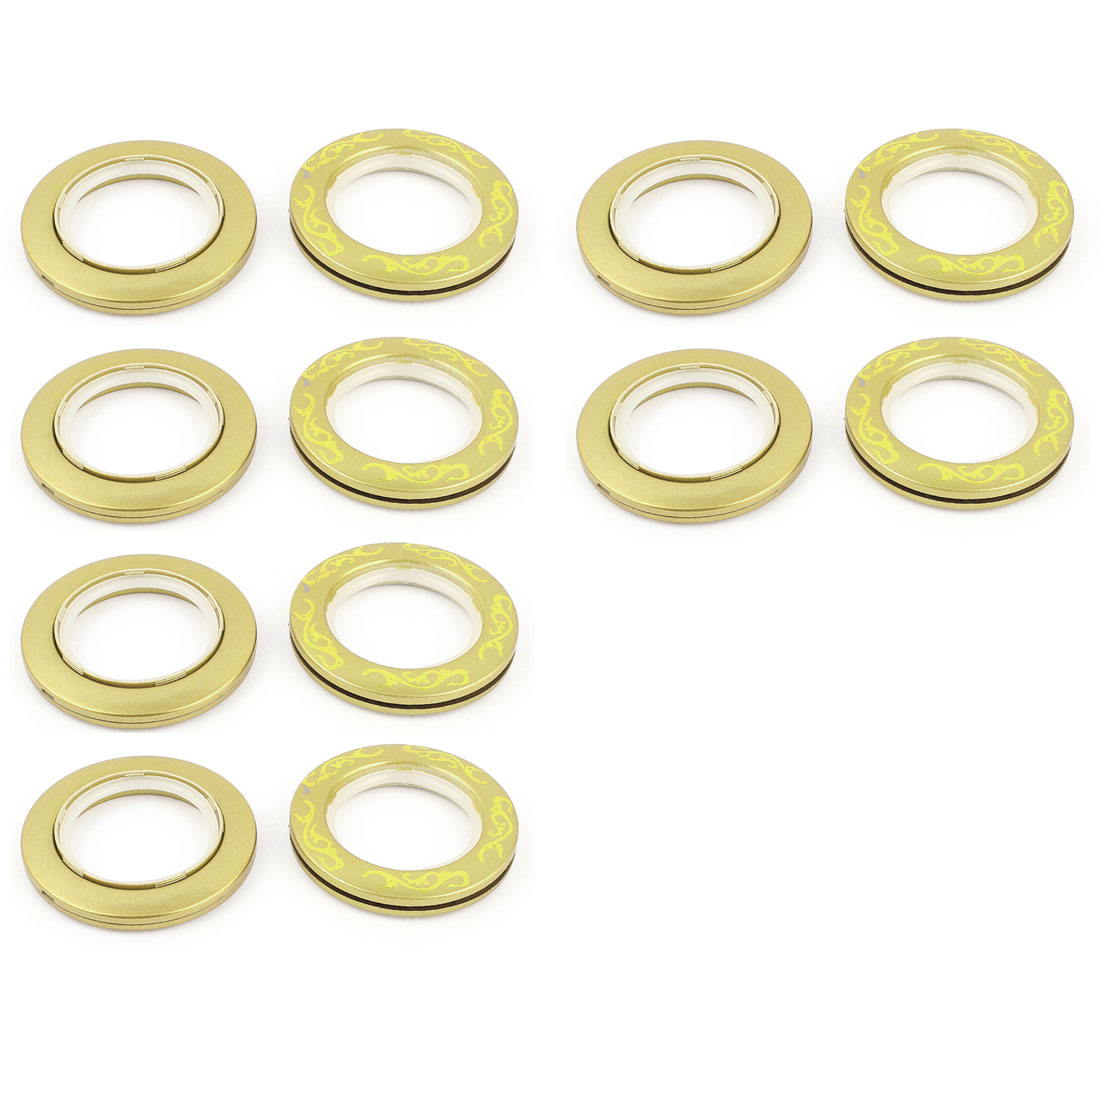 12 Pcs Window Decor Rings Yellow for 44mm Inner Dia Eyelet Curtain Drapery